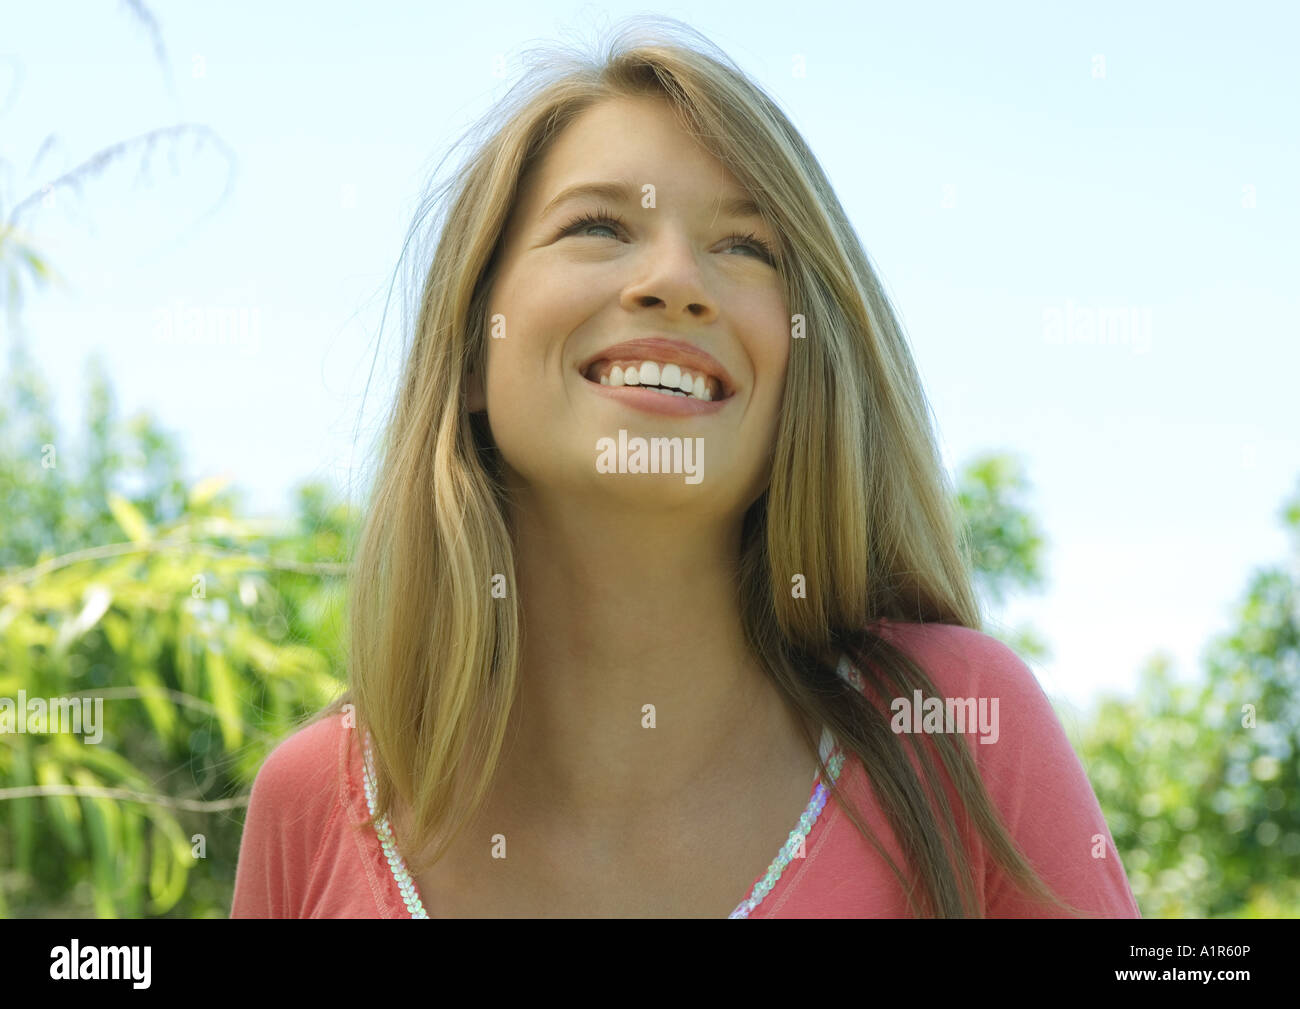 Young woman outdoors, smiling and looking up - Stock Image